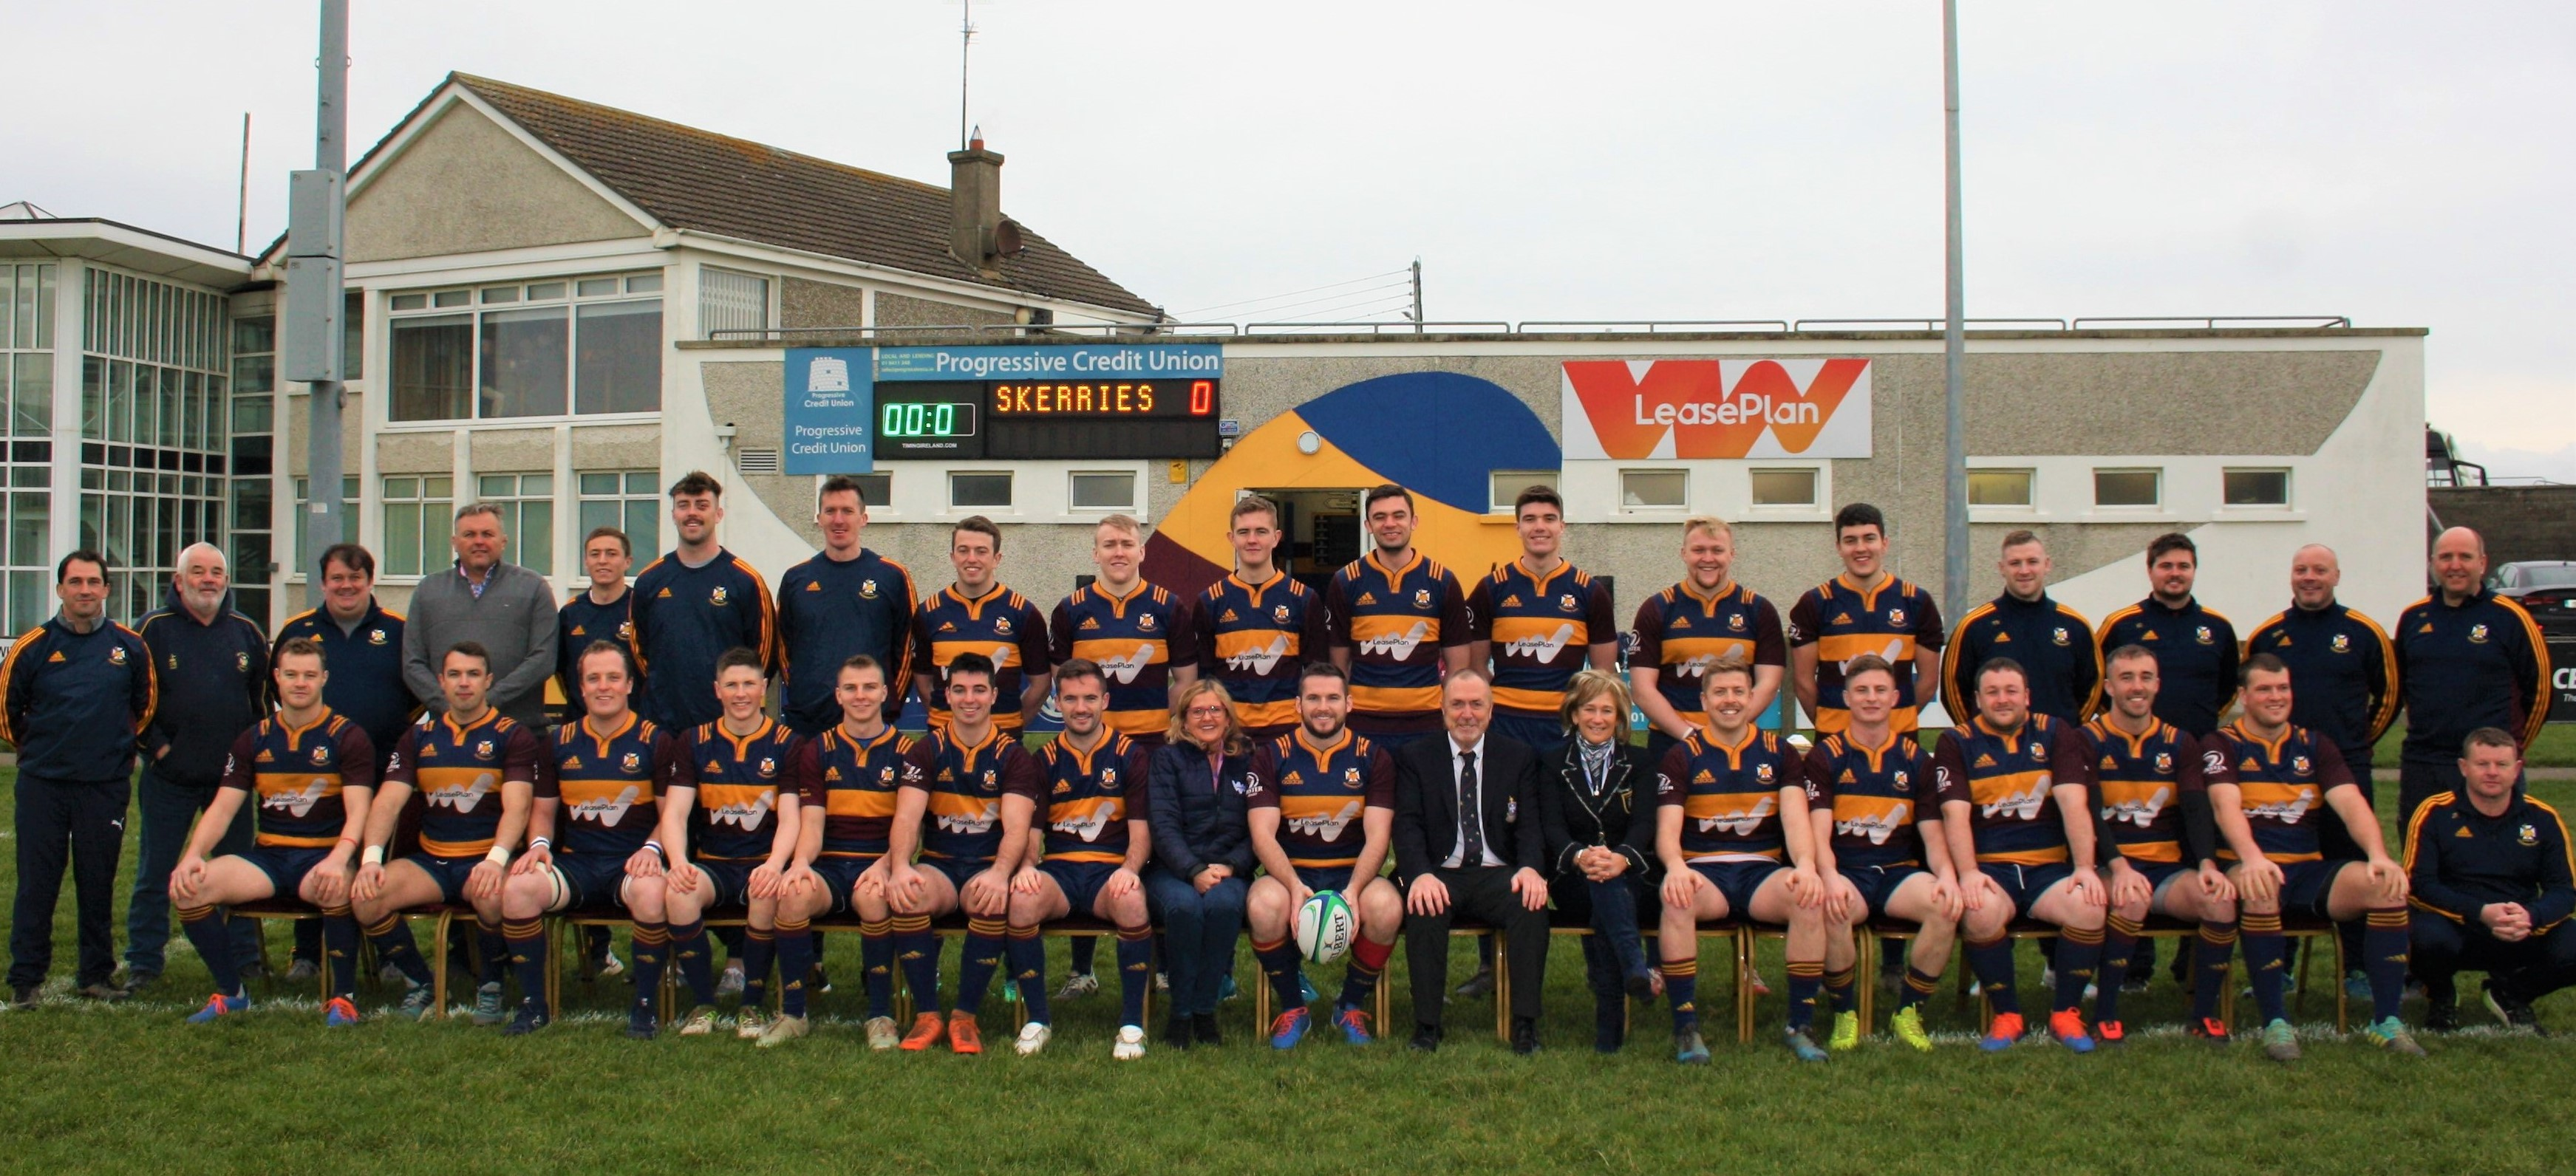 Hotels in Skerries. Book your hotel now! - brighten-up.uk